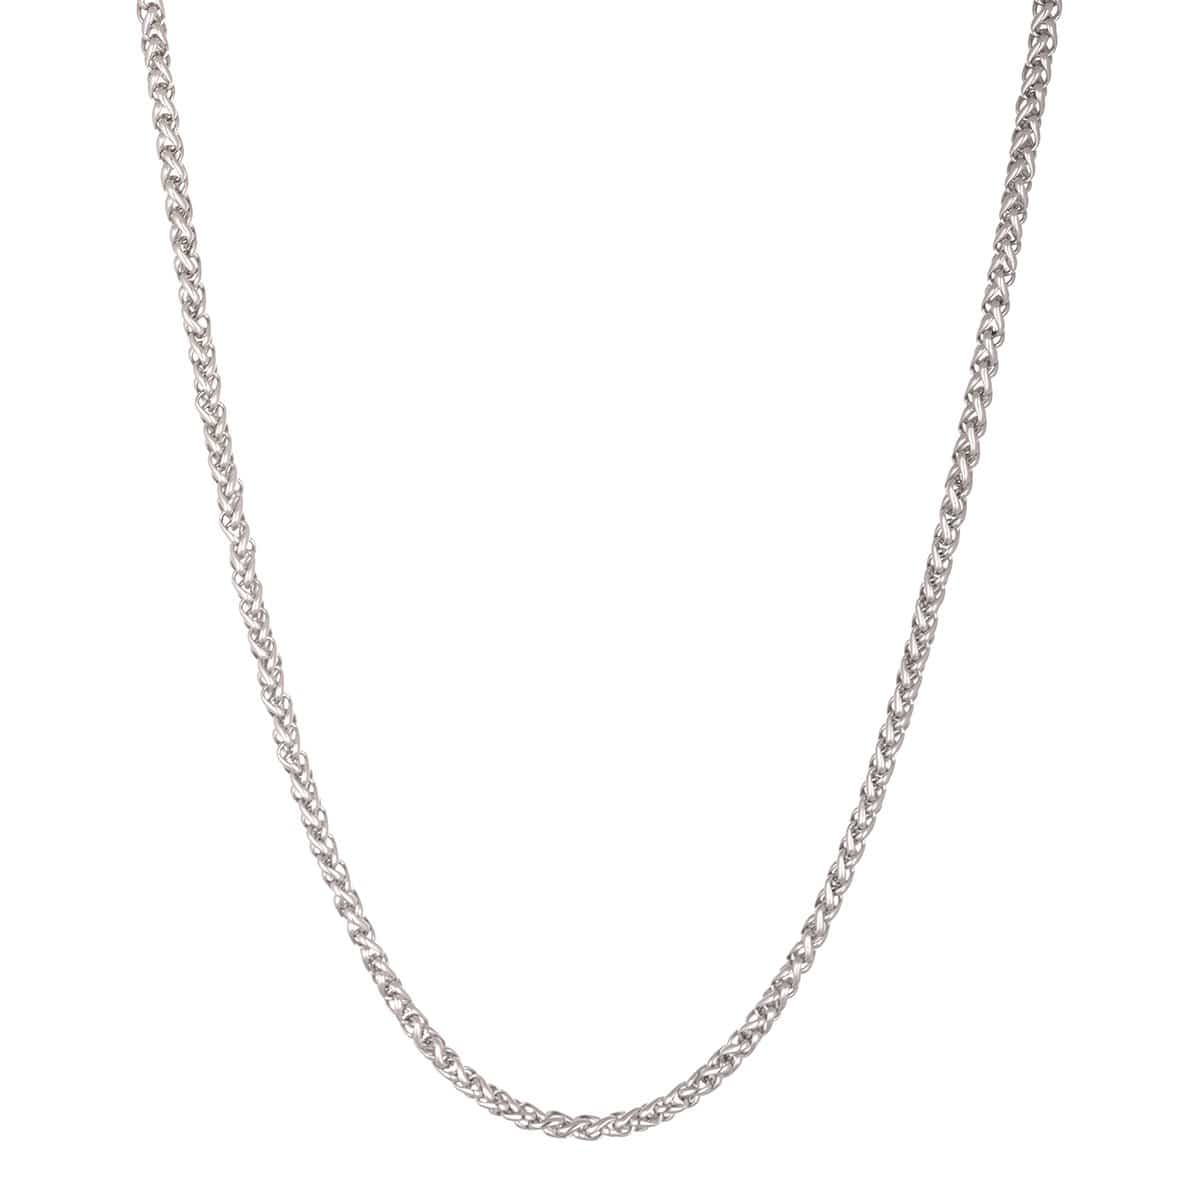 Silver Stainless Steel Polished 3.5 mm Round Wheat Chain Chains